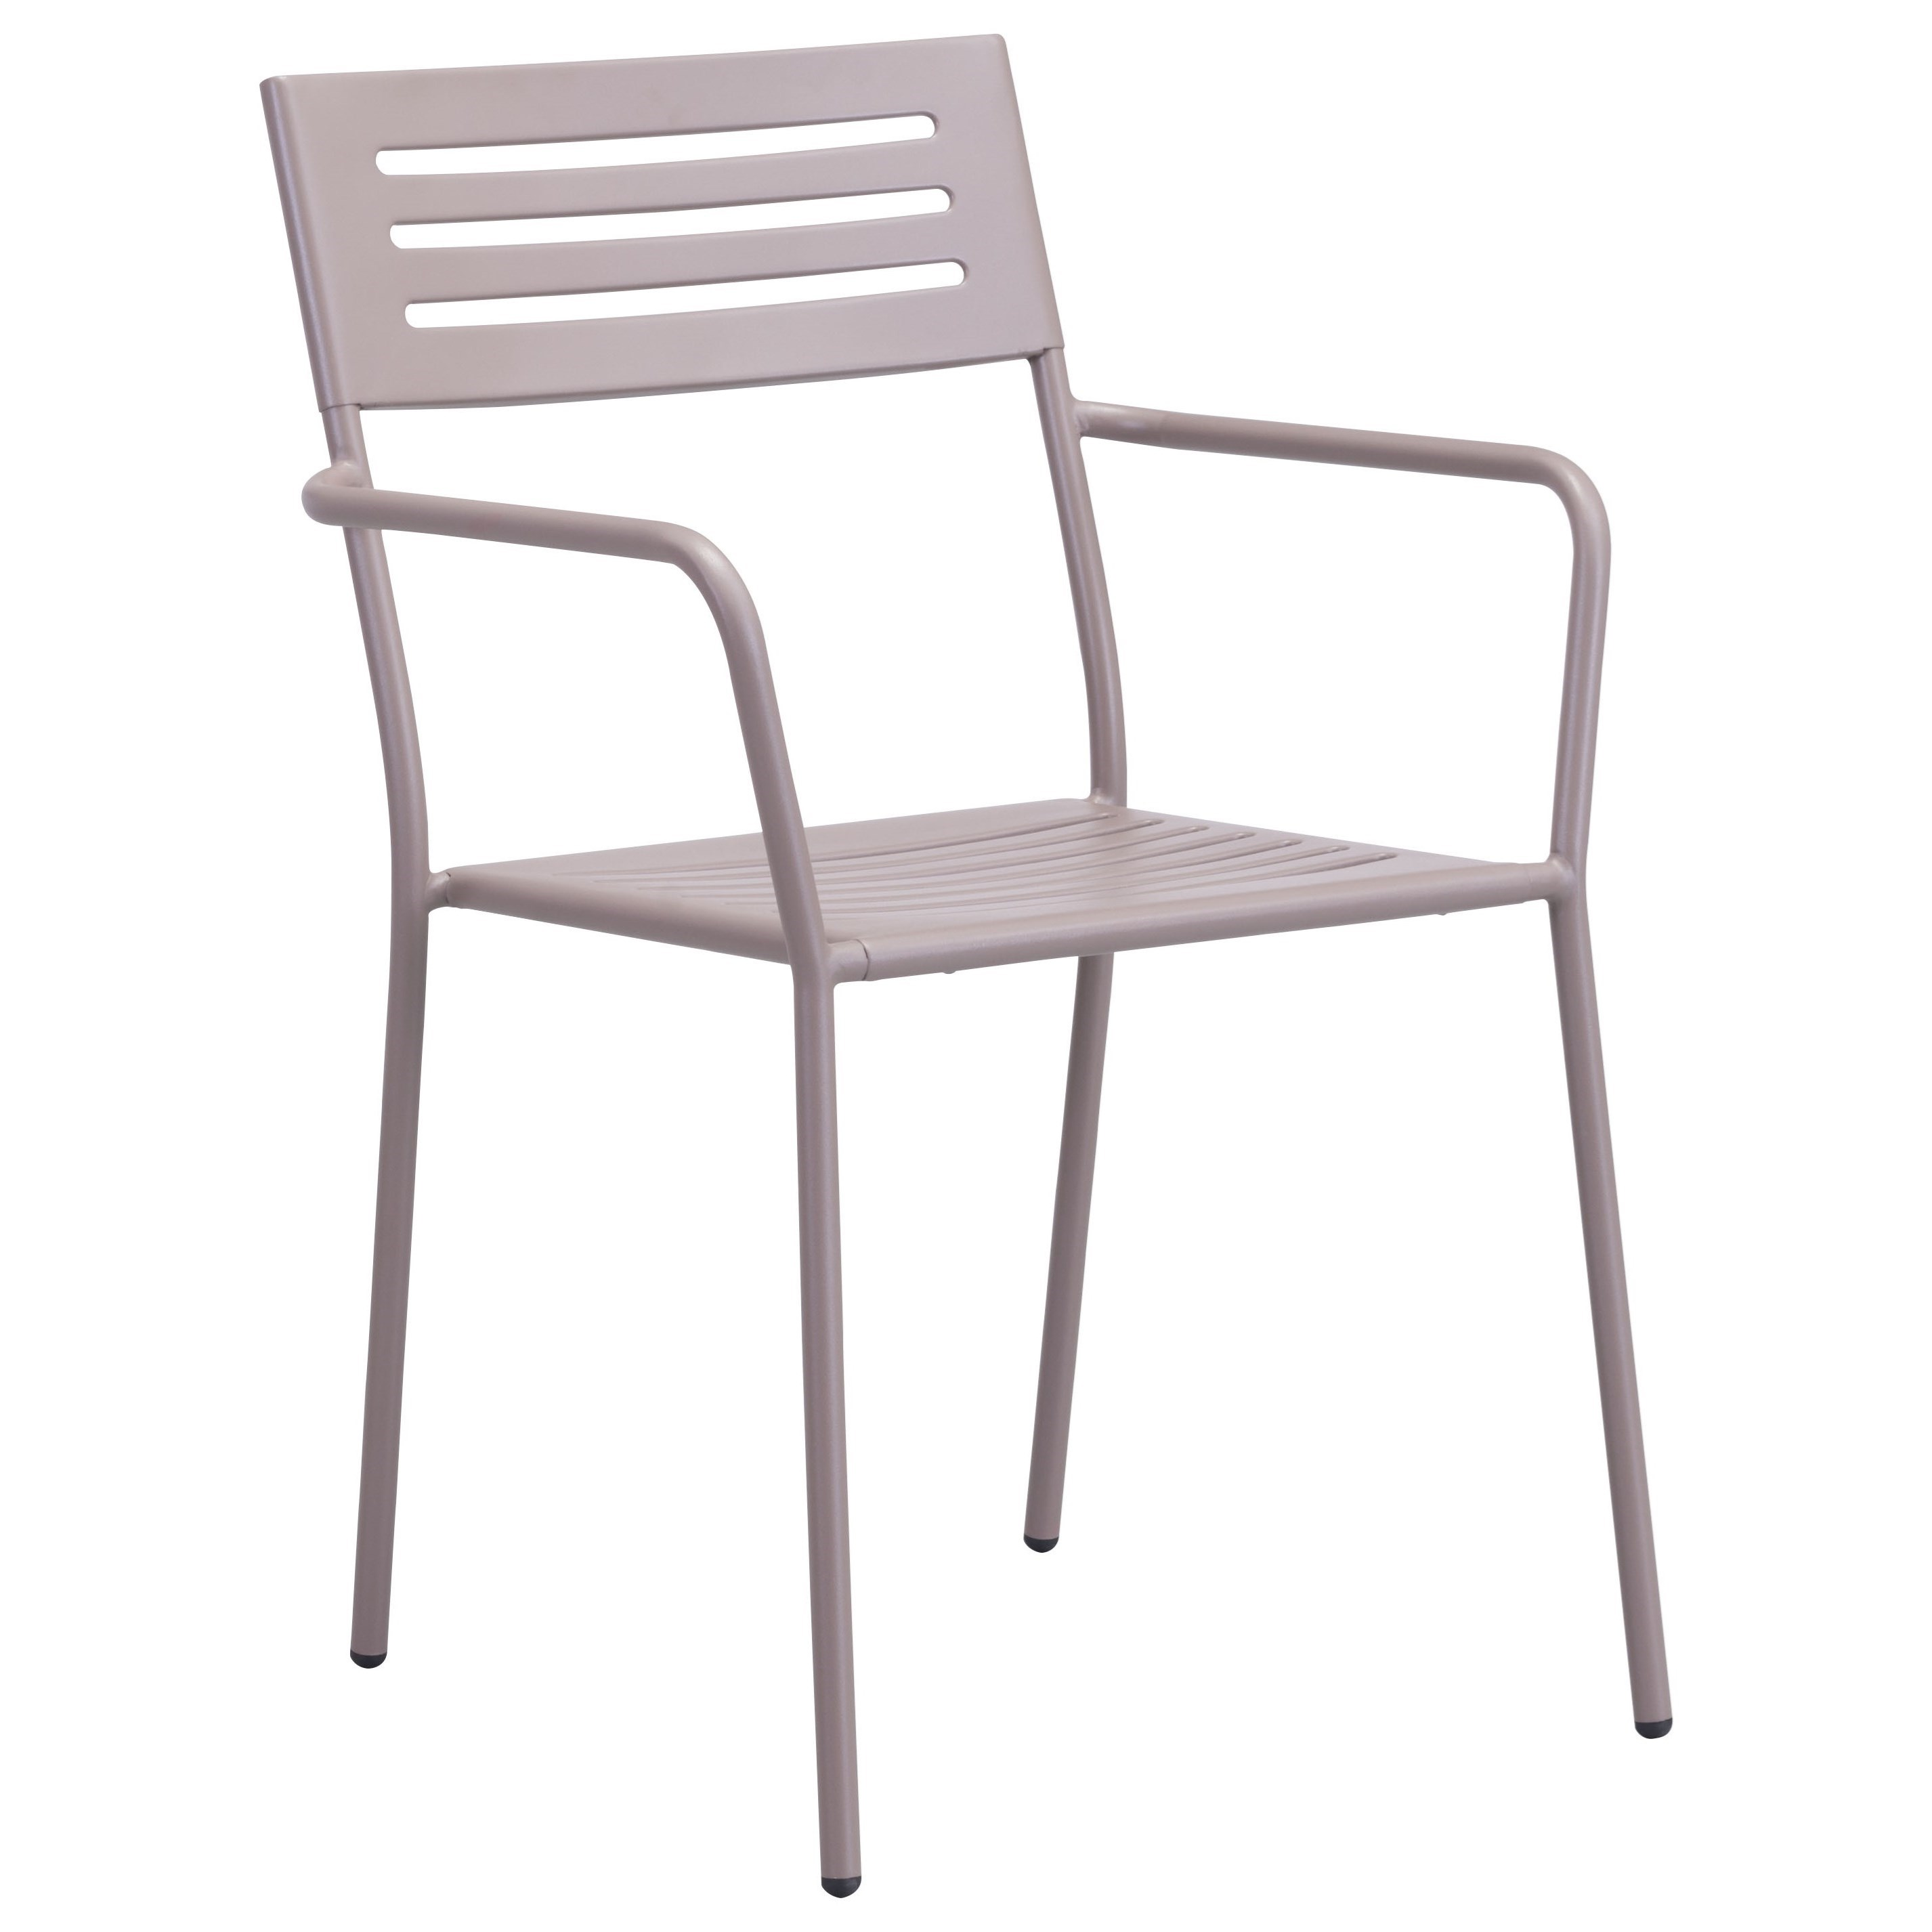 Wald Dining Arm Chair by Zuo at Nassau Furniture and Mattress